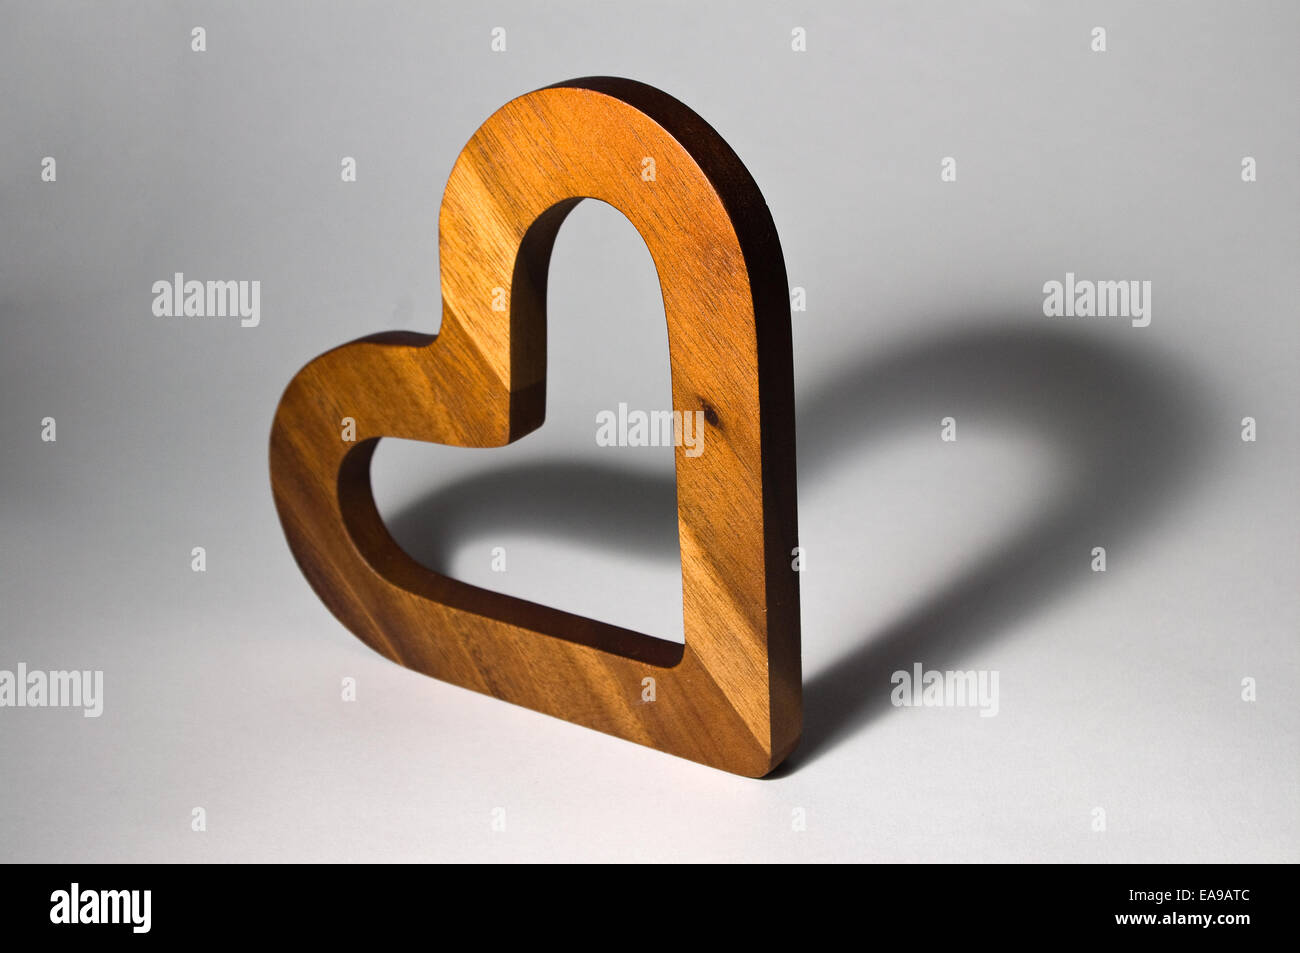 Wooden heart with heart-shaped shadow giving appearance of two hearts. - Stock Image